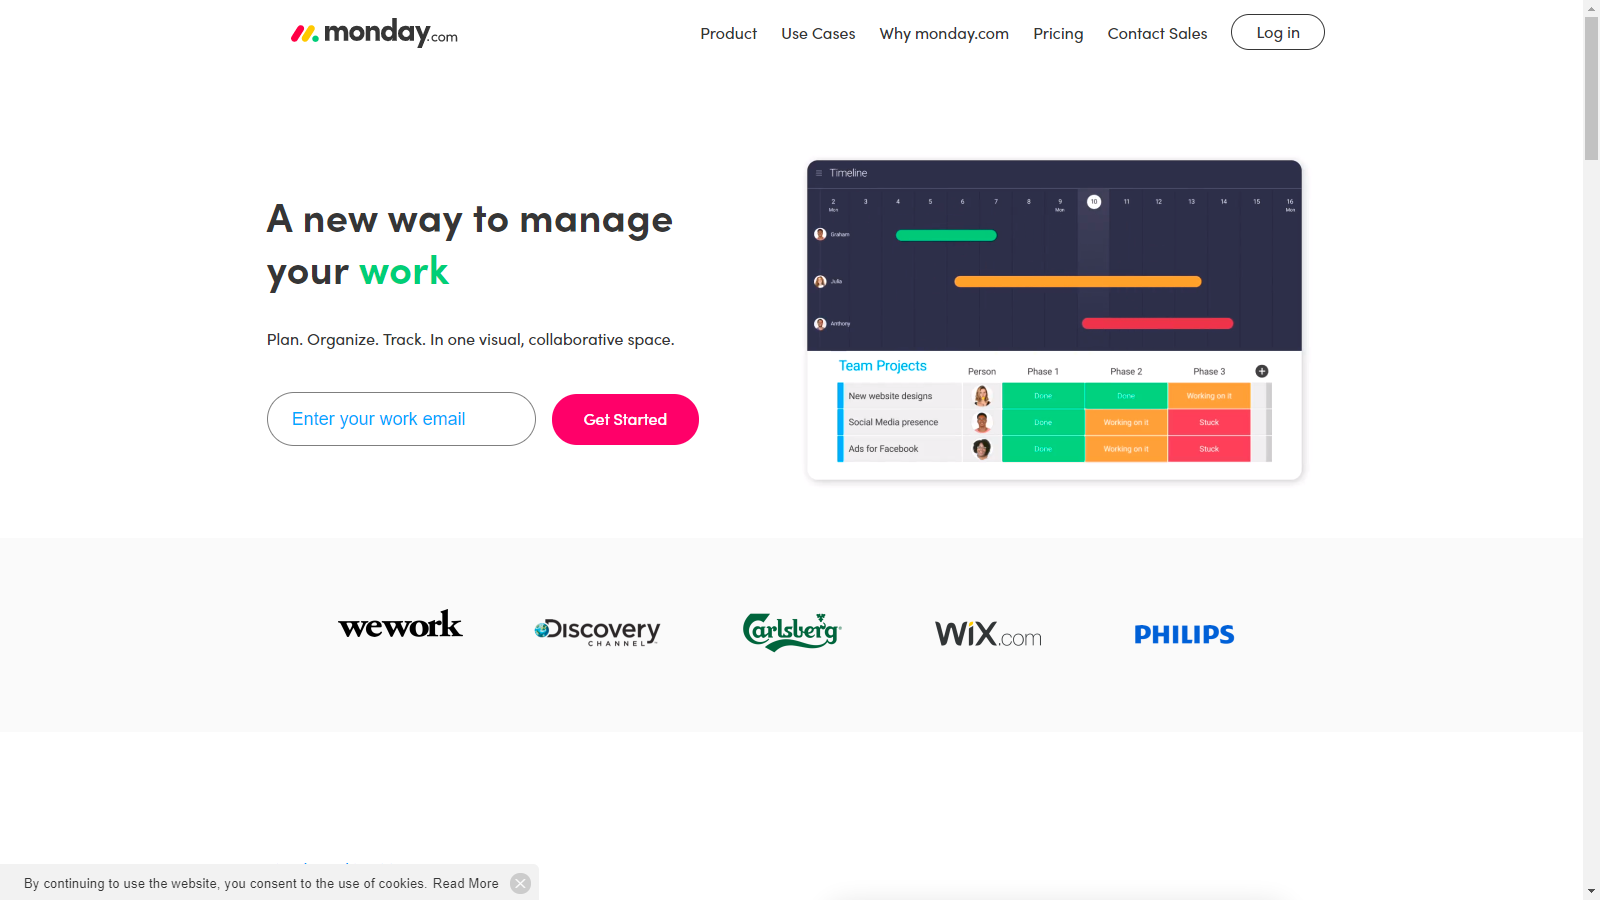 monday.com  marketing website landing page with single signup field for work email